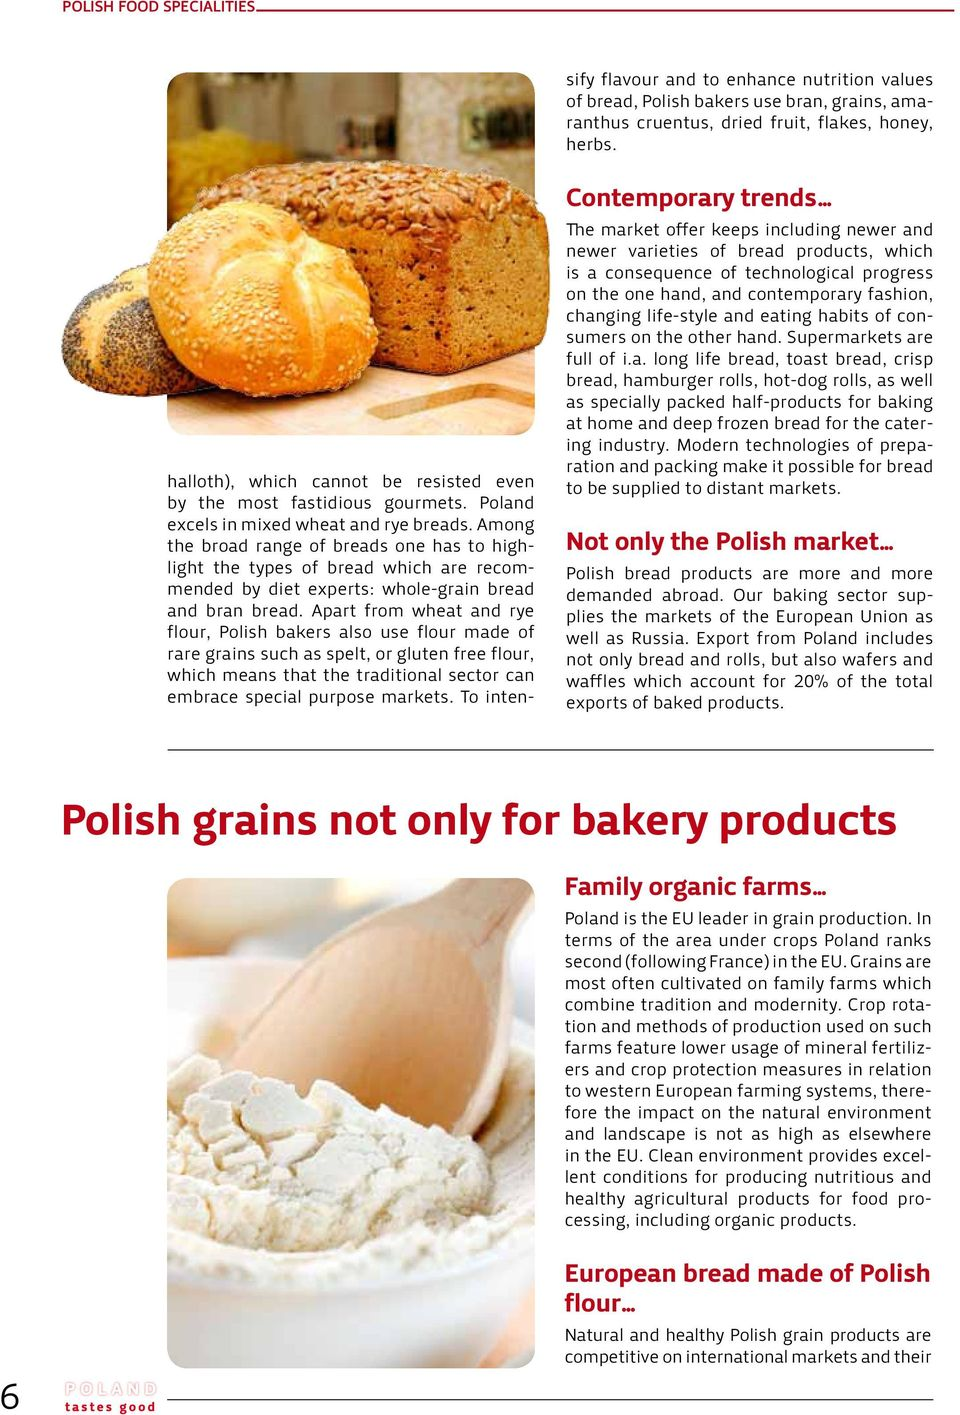 Among the broad range of breads one has to highlight the types of bread which are recommended by diet experts: whole-grain bread and bran bread.